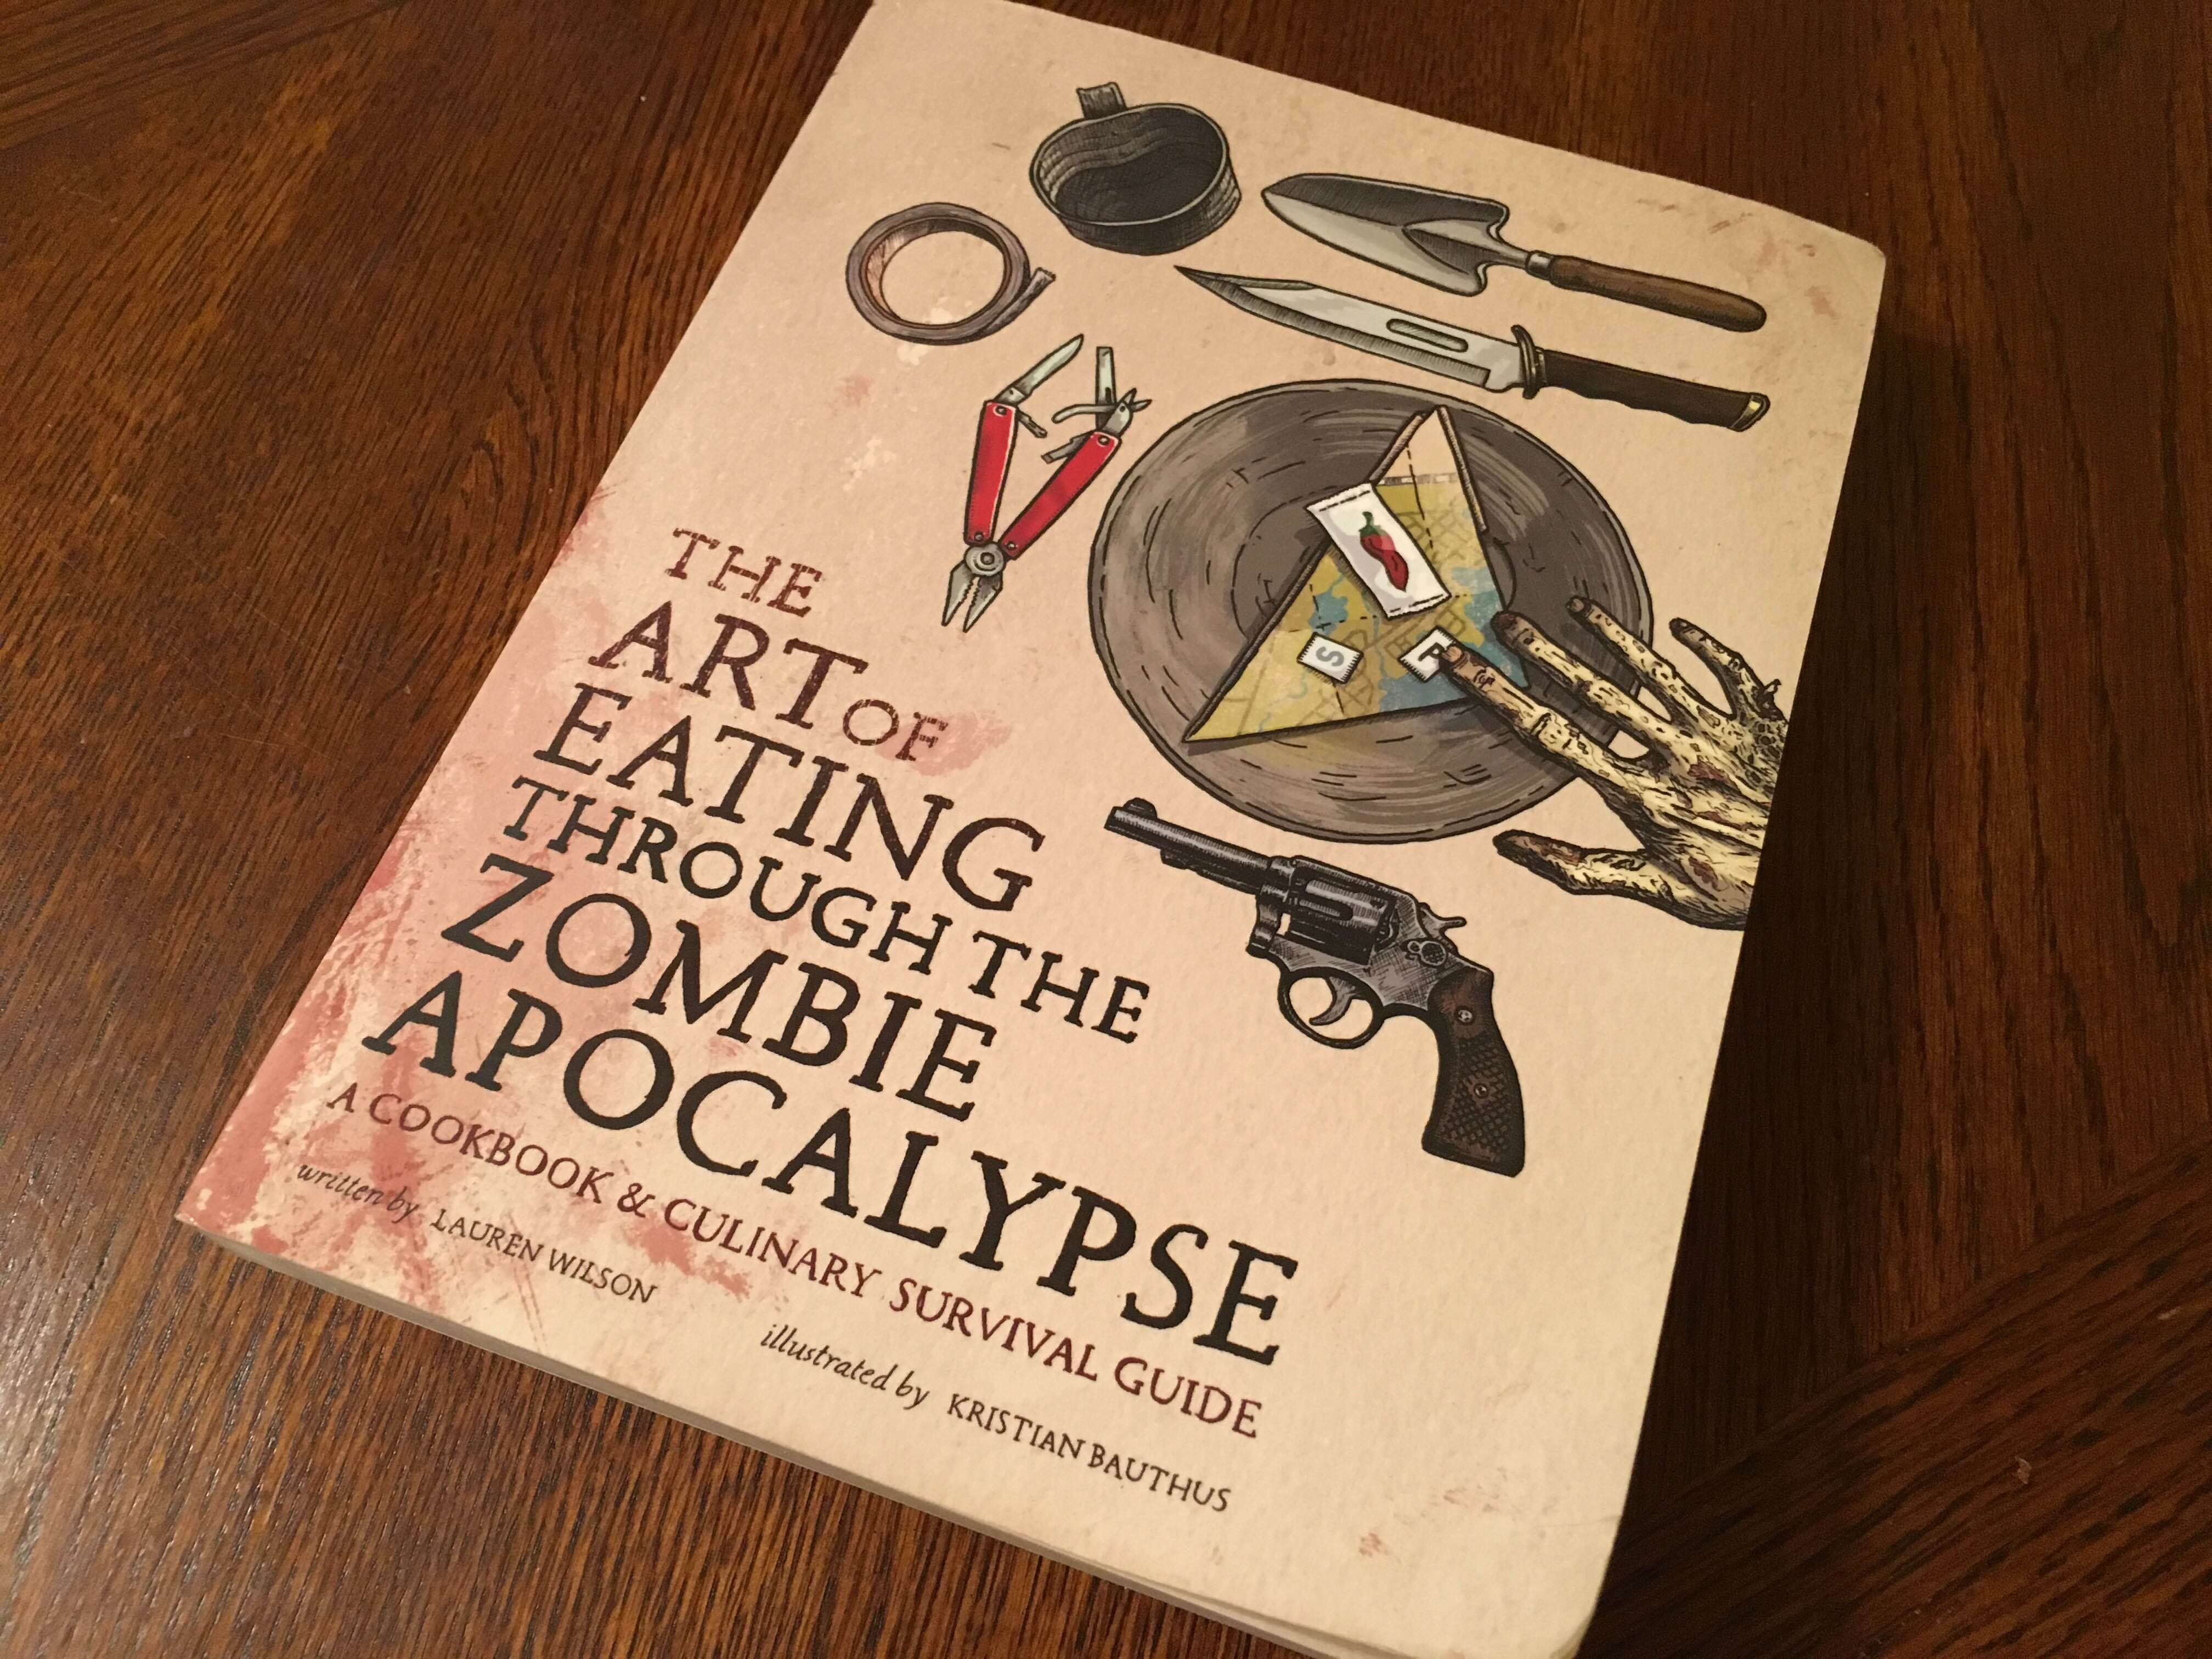 The Art of Eating through the Zombie Apocalypse [Book Review]